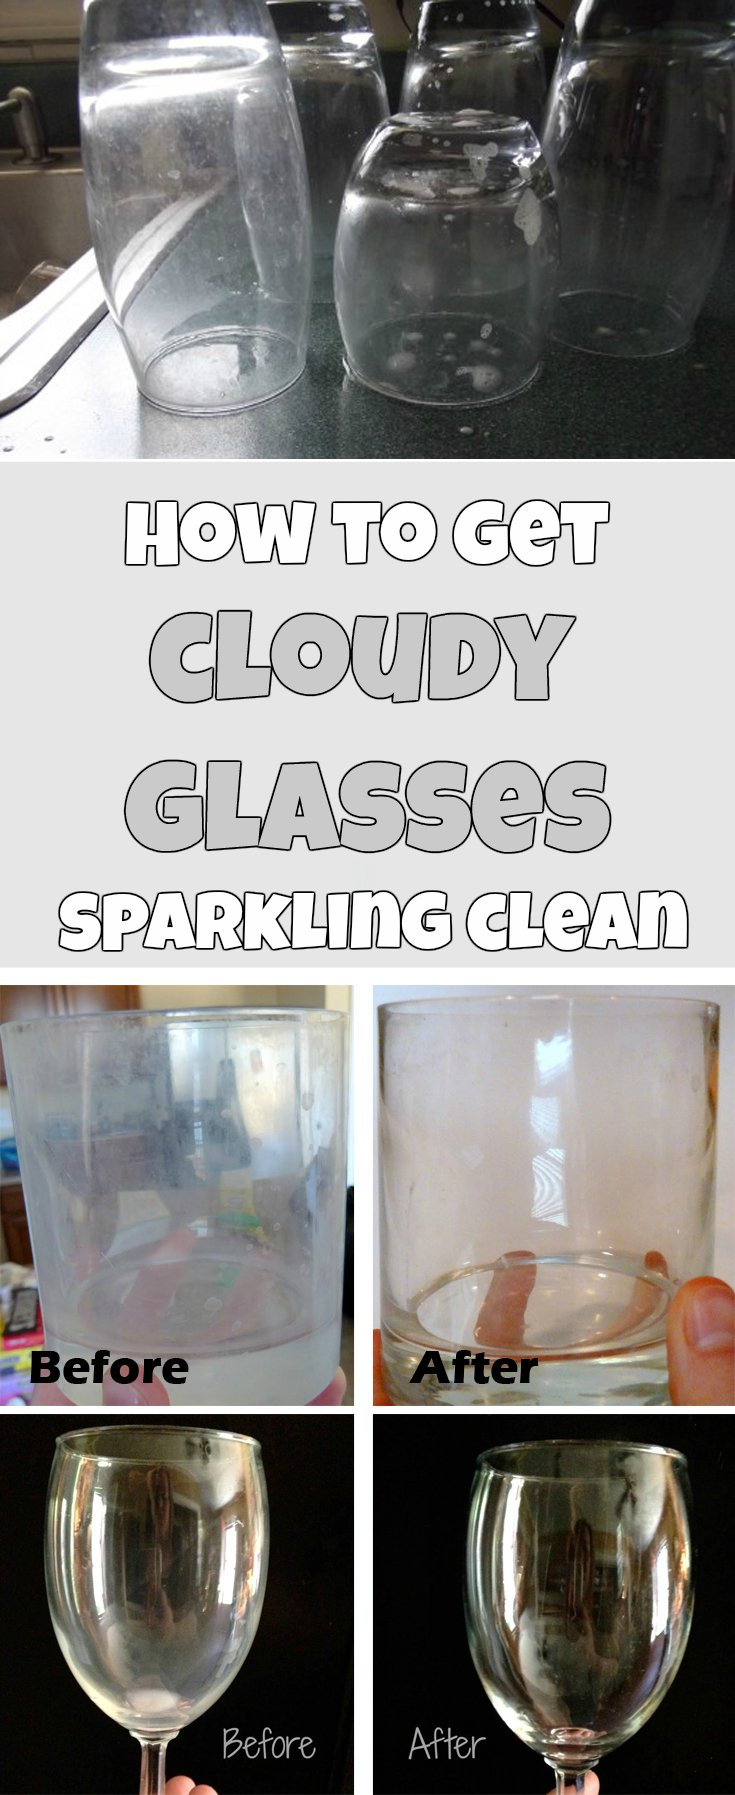 How To Get Cloudy Glasses Sparkling Clean